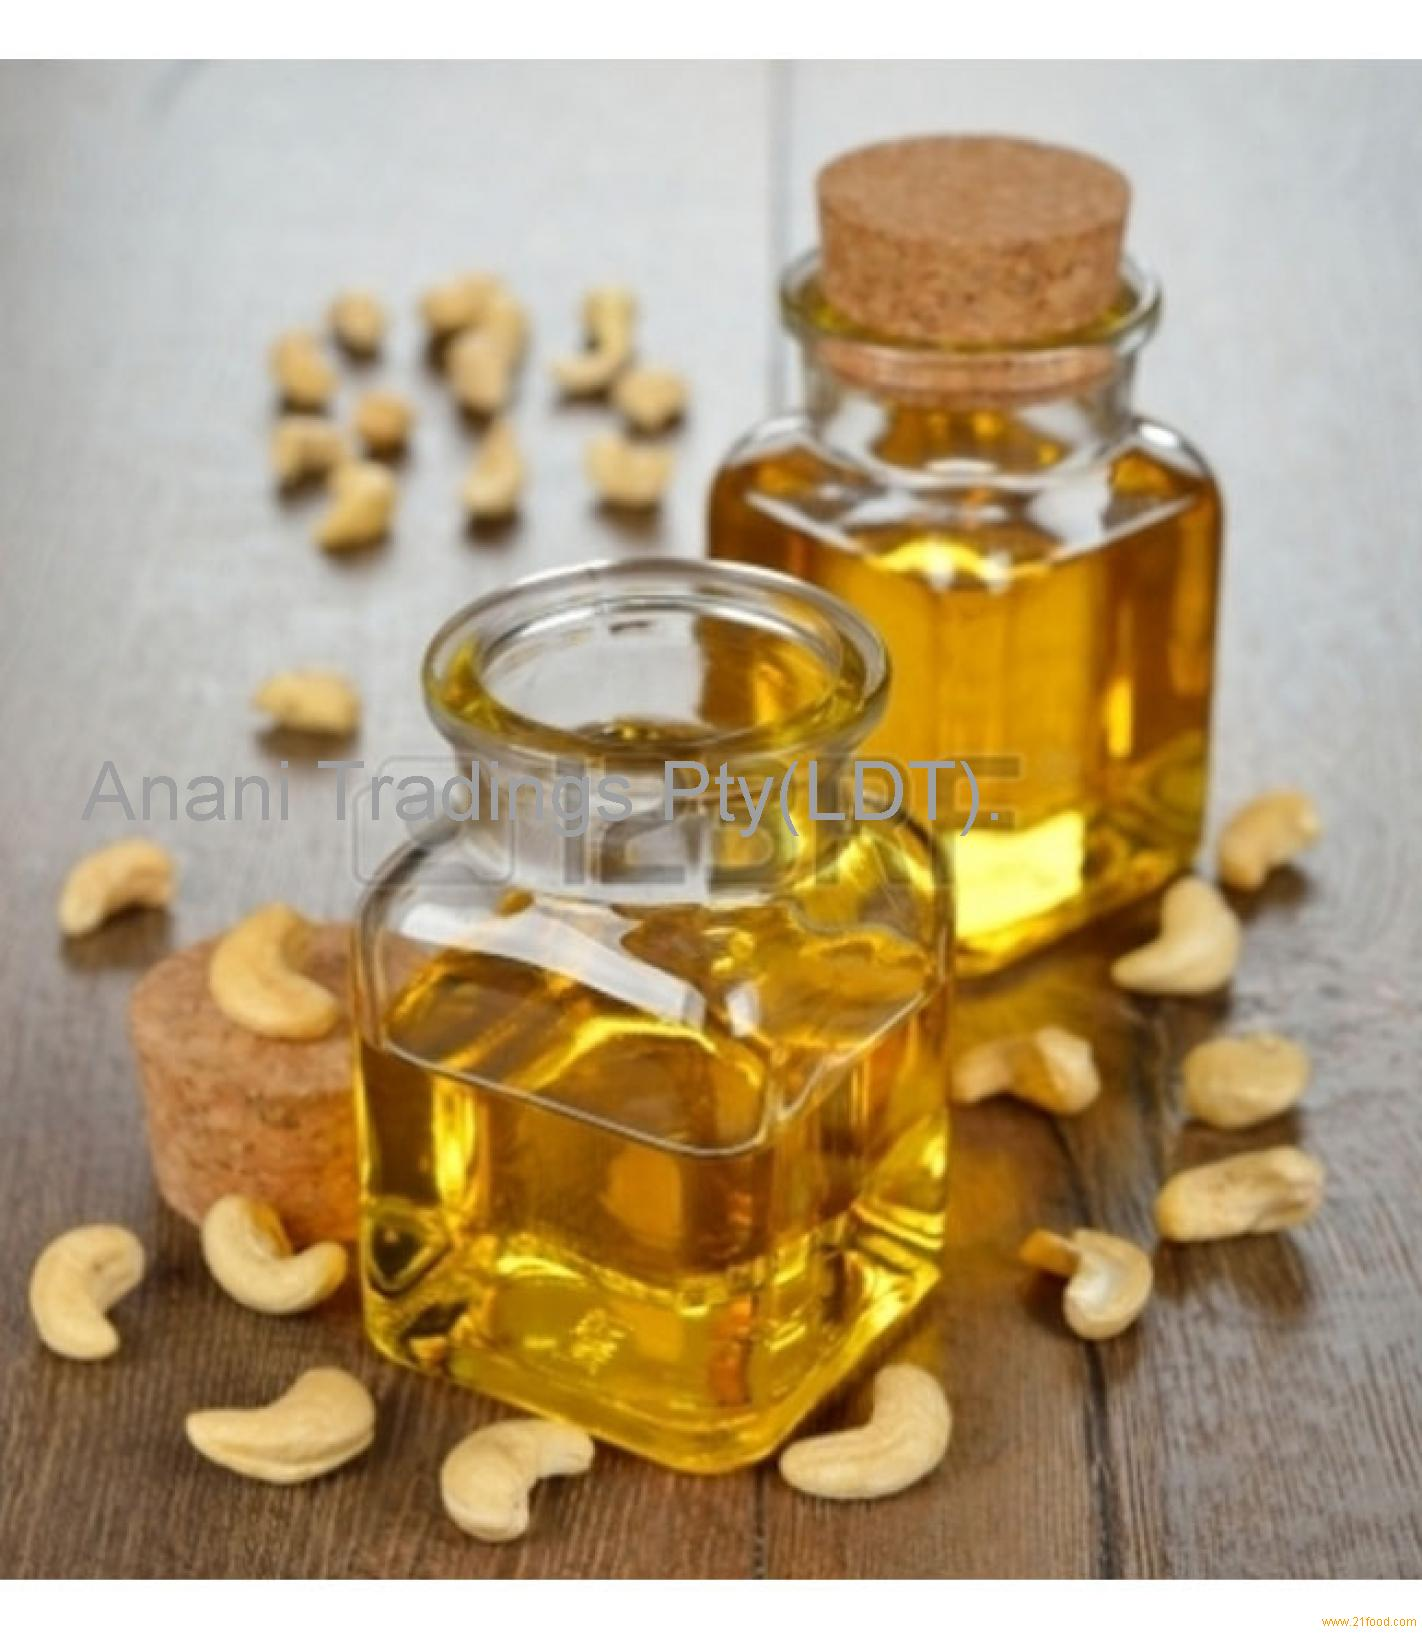 Top Class Nut & Seed Oil